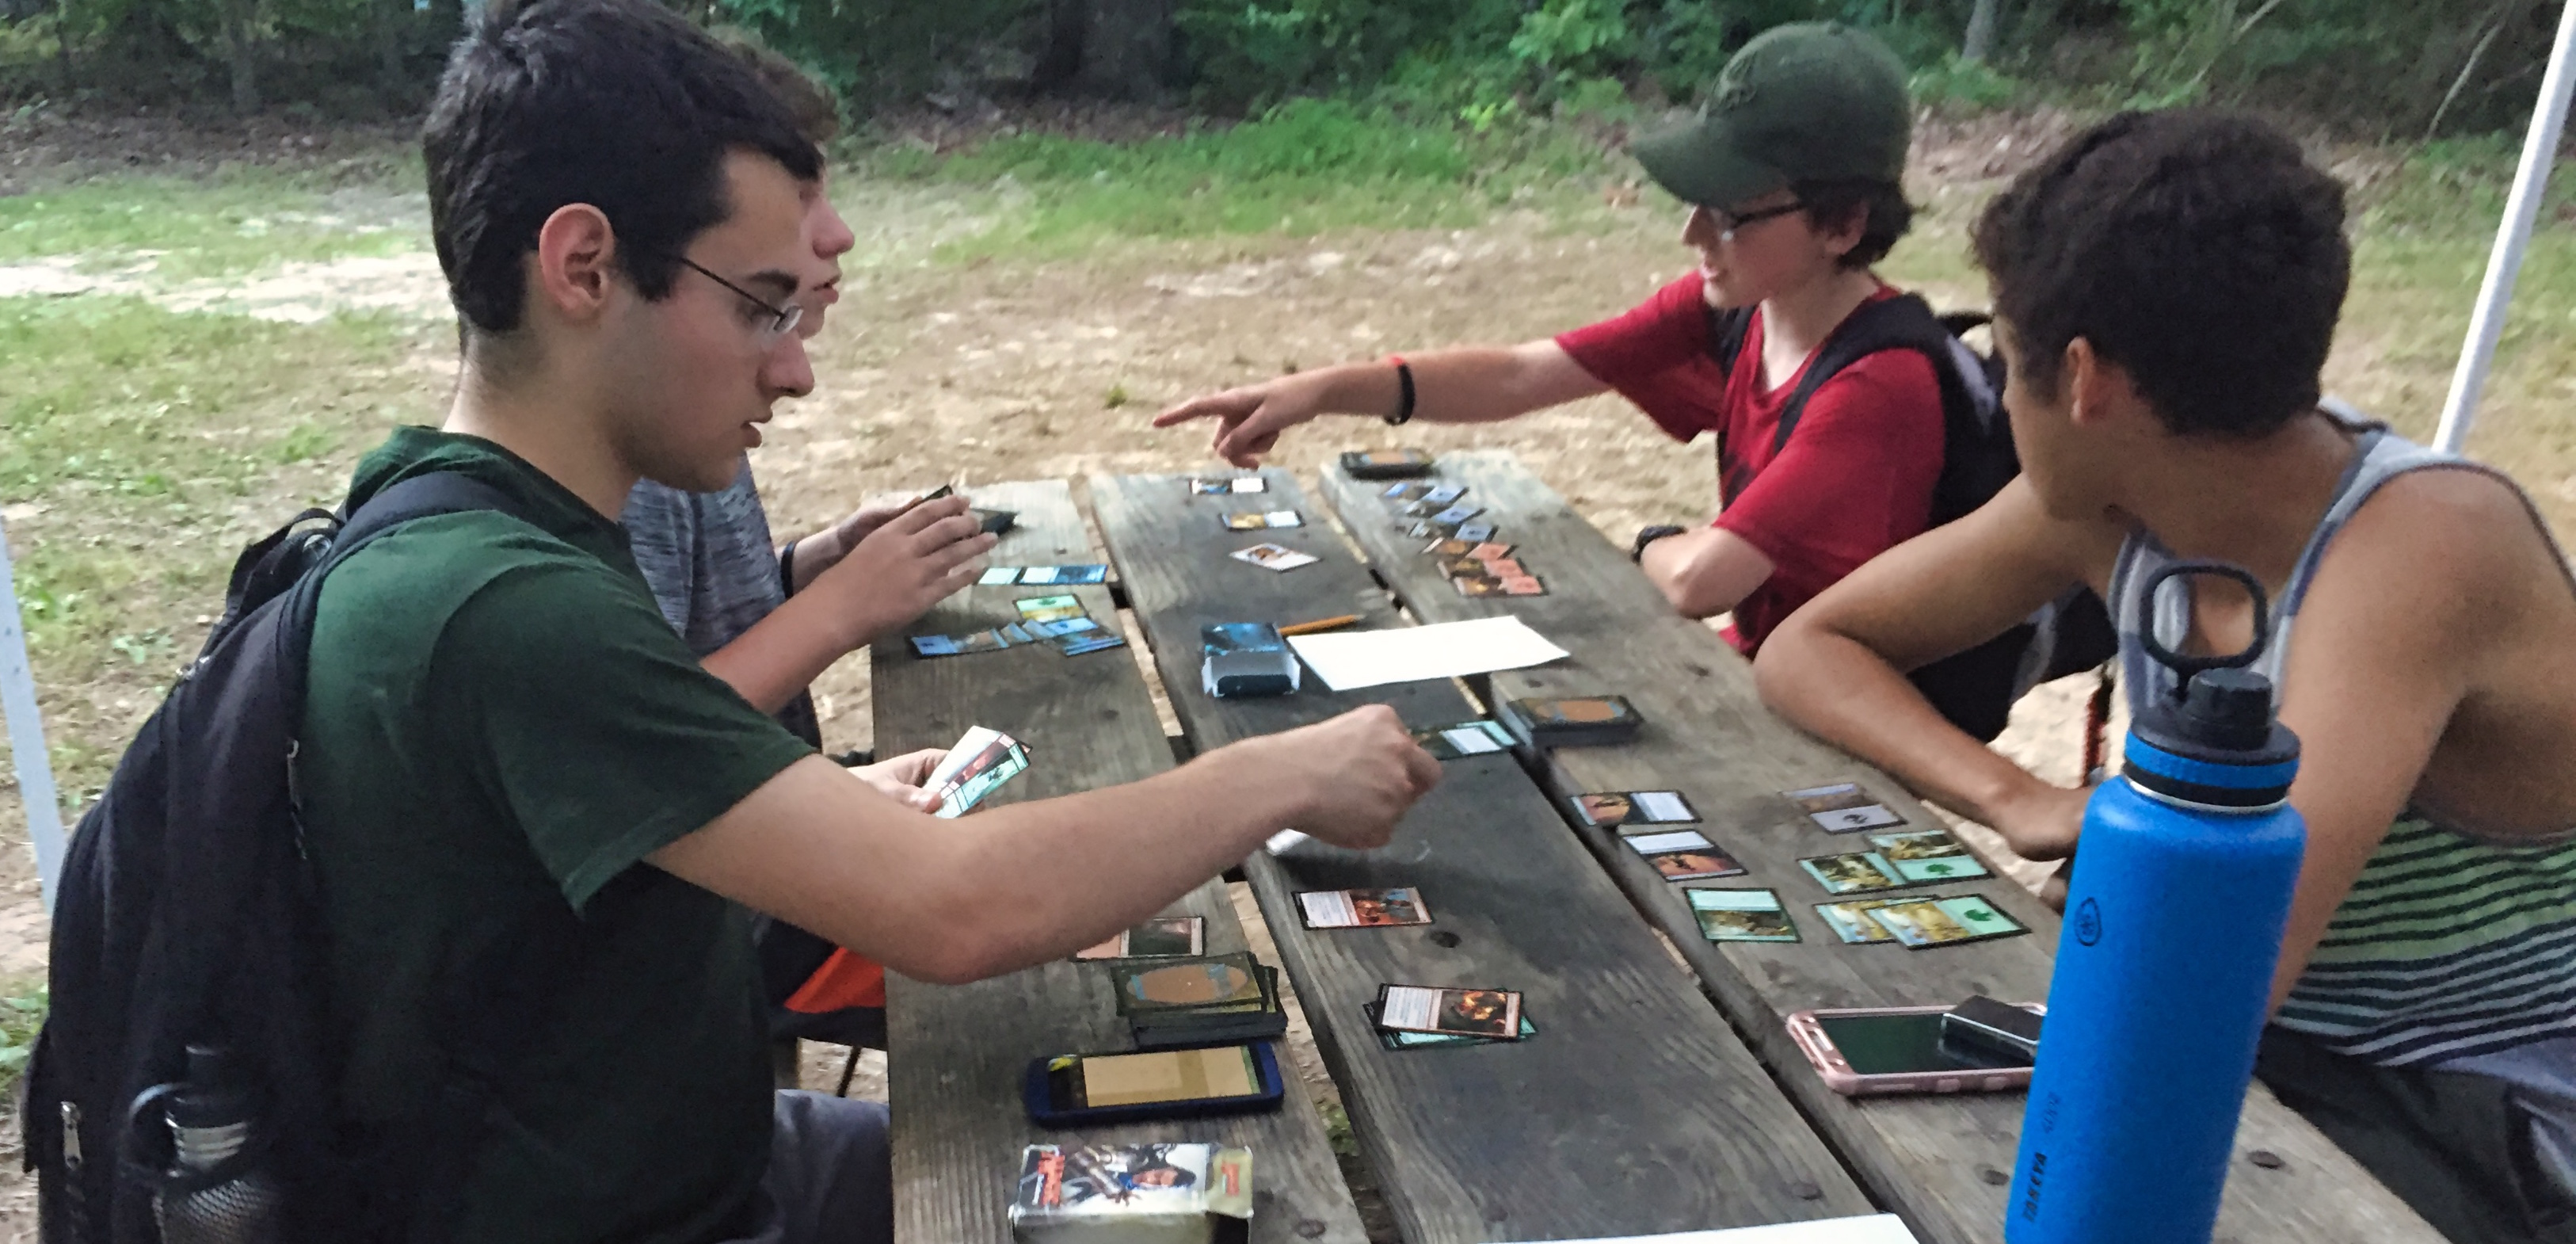 MTG-Camp-Using-Picnic-Tables-Outside